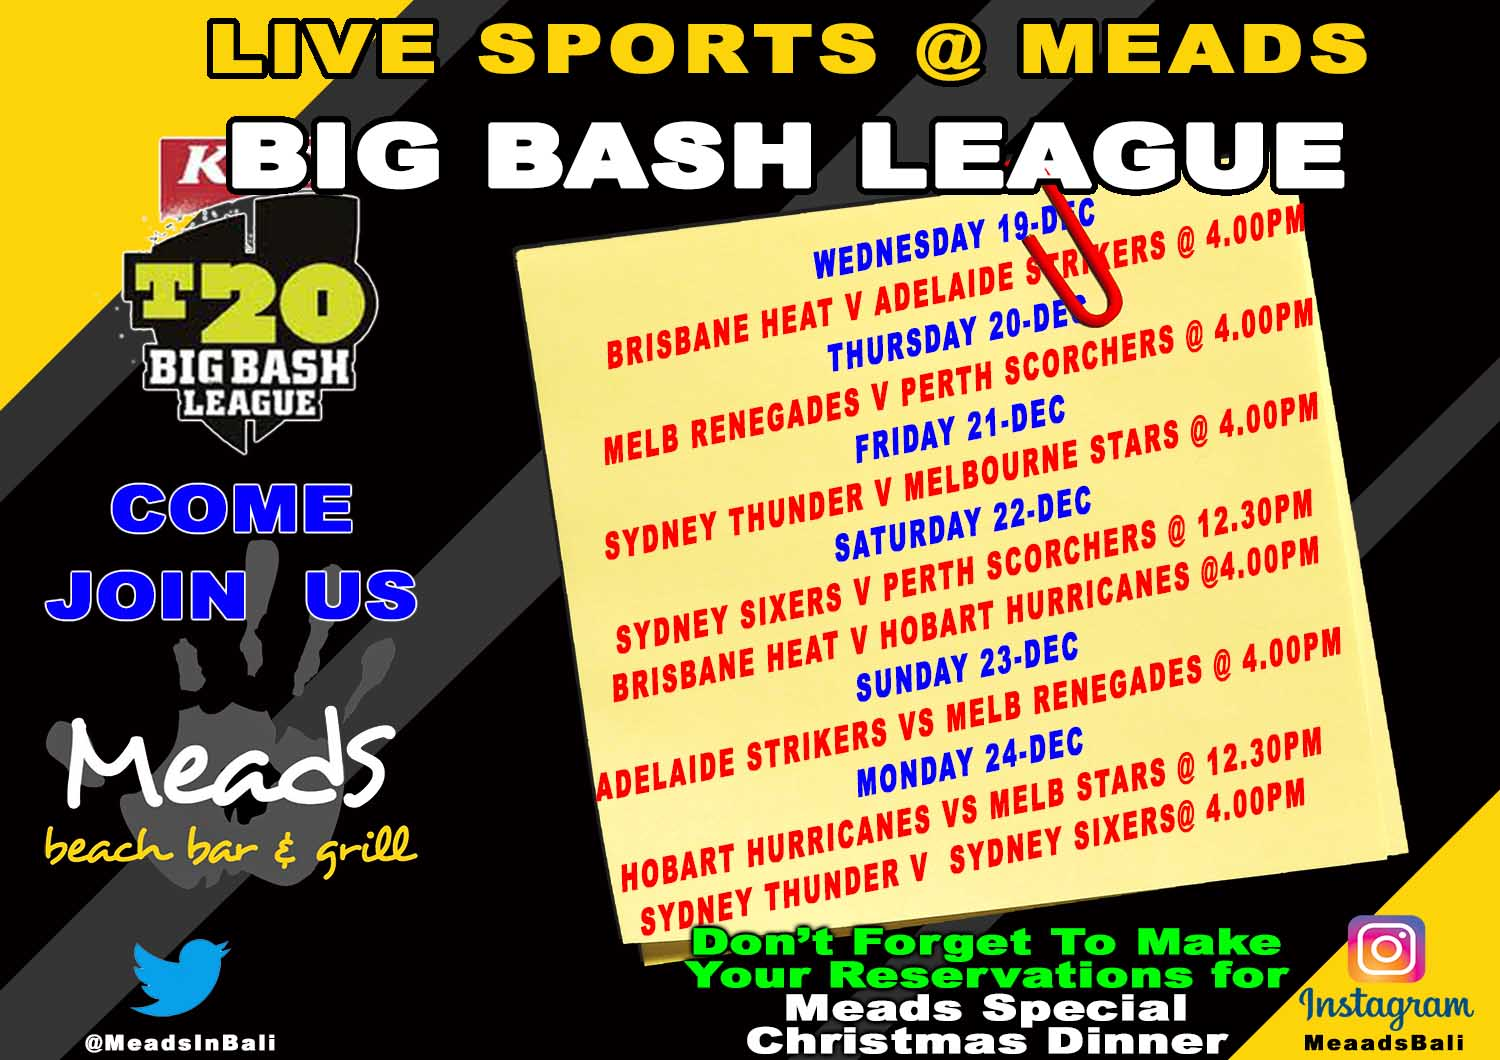 Meads in Bali is Proud to Present Big Bash League LIVE